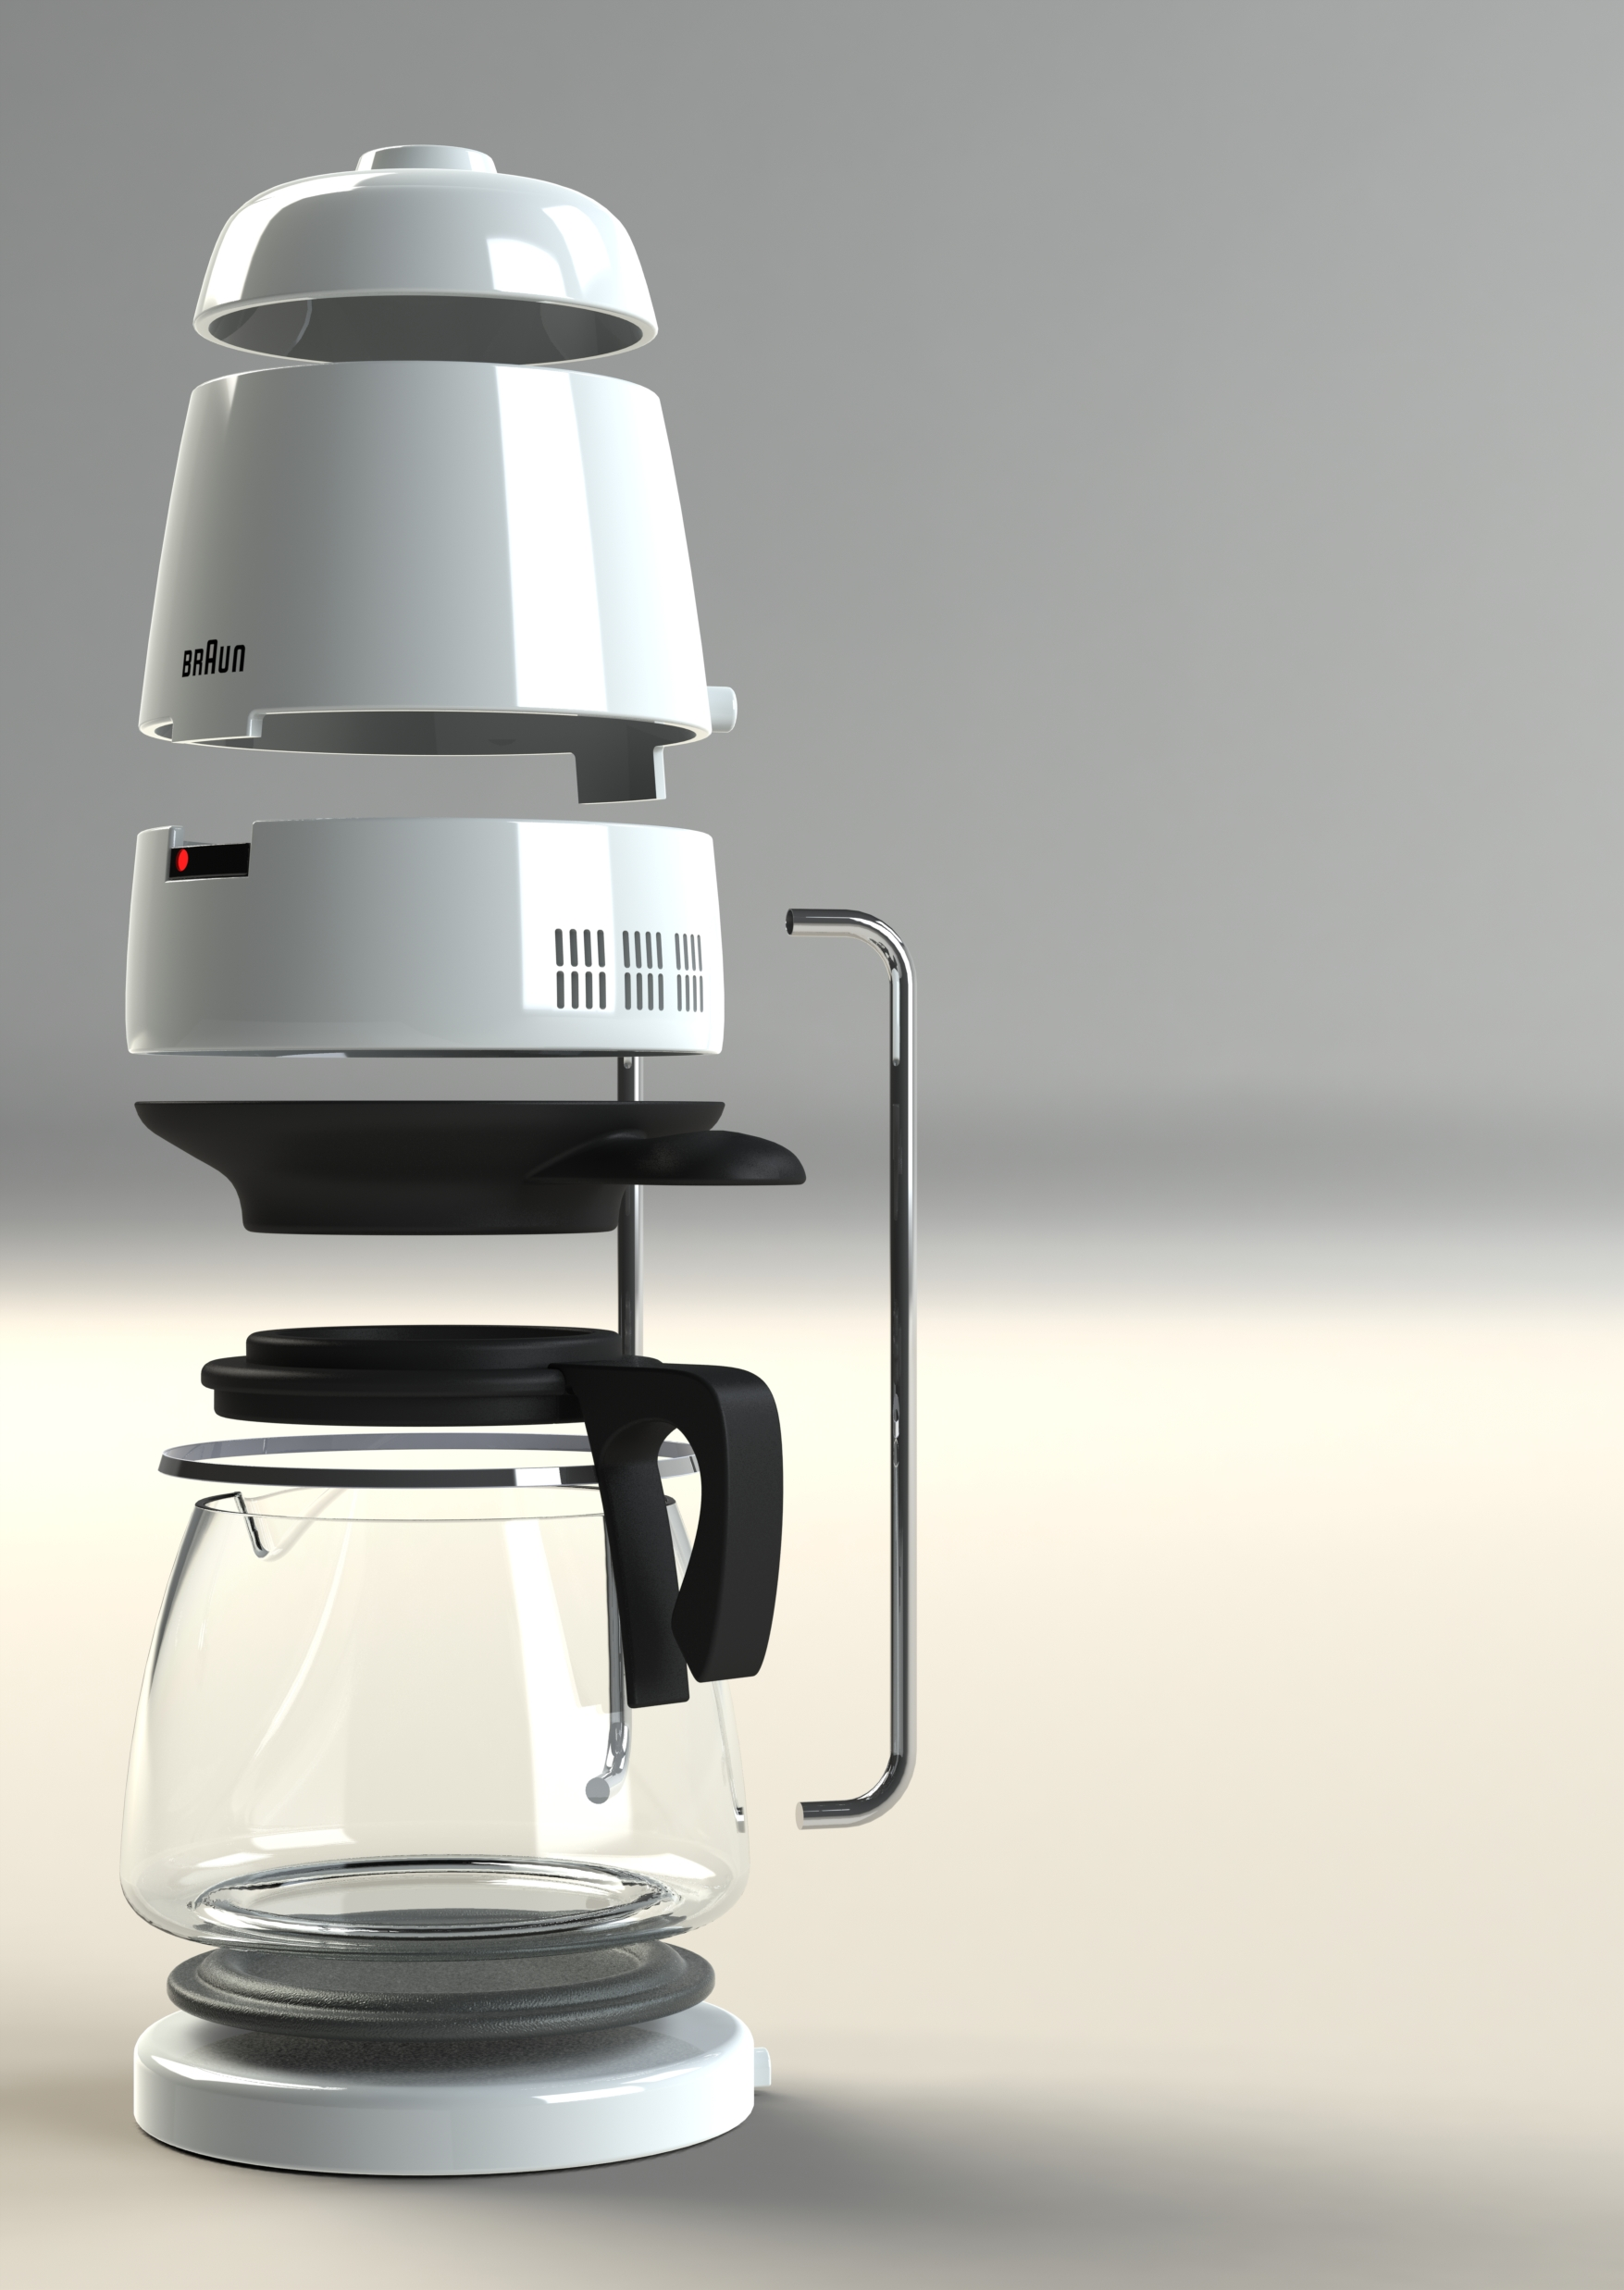 Braun kf2010 coffee maker by richard wilson at for View maker